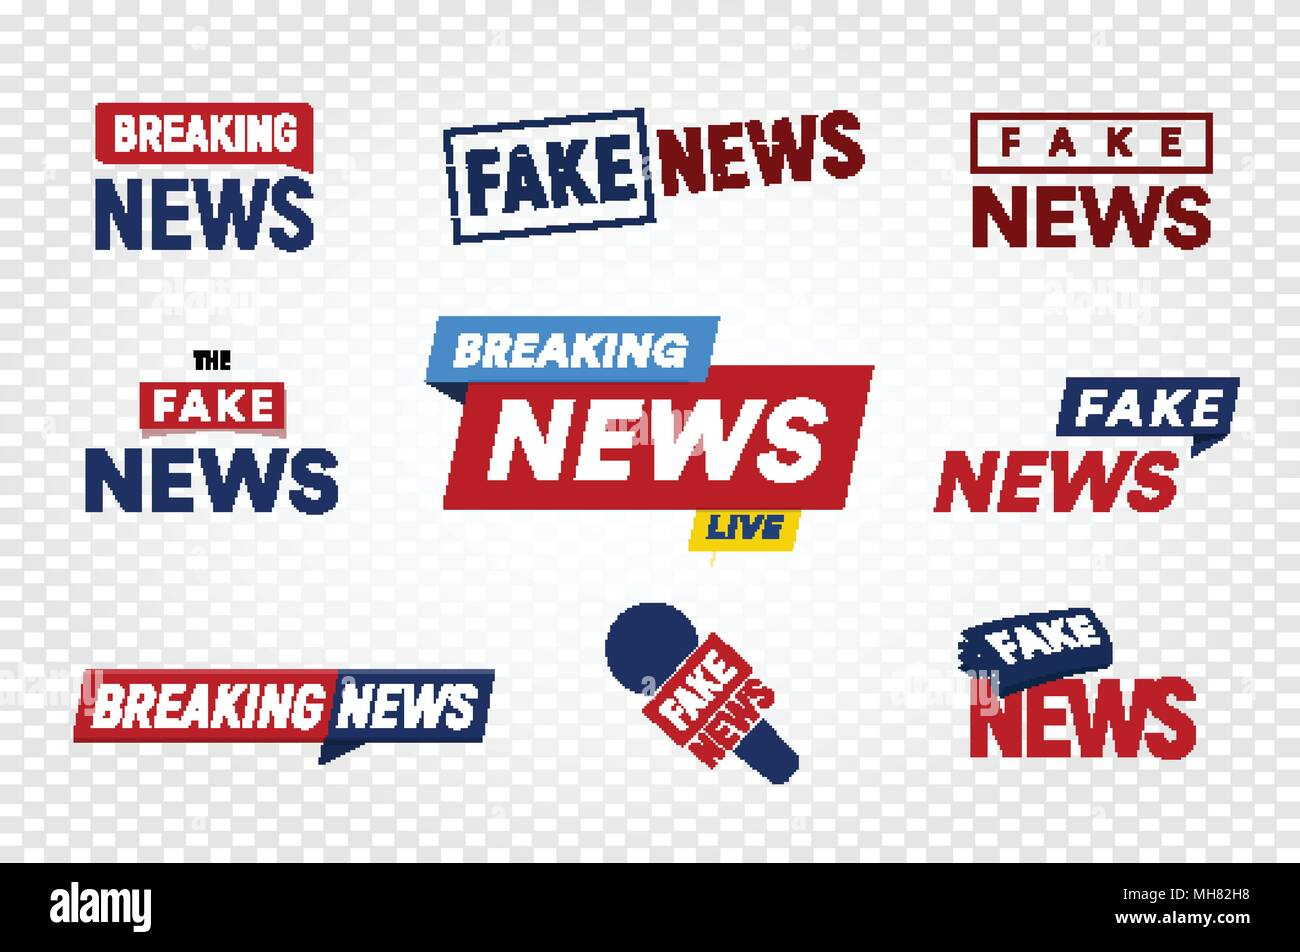 Breaking and fake news logo template on transparent background ...